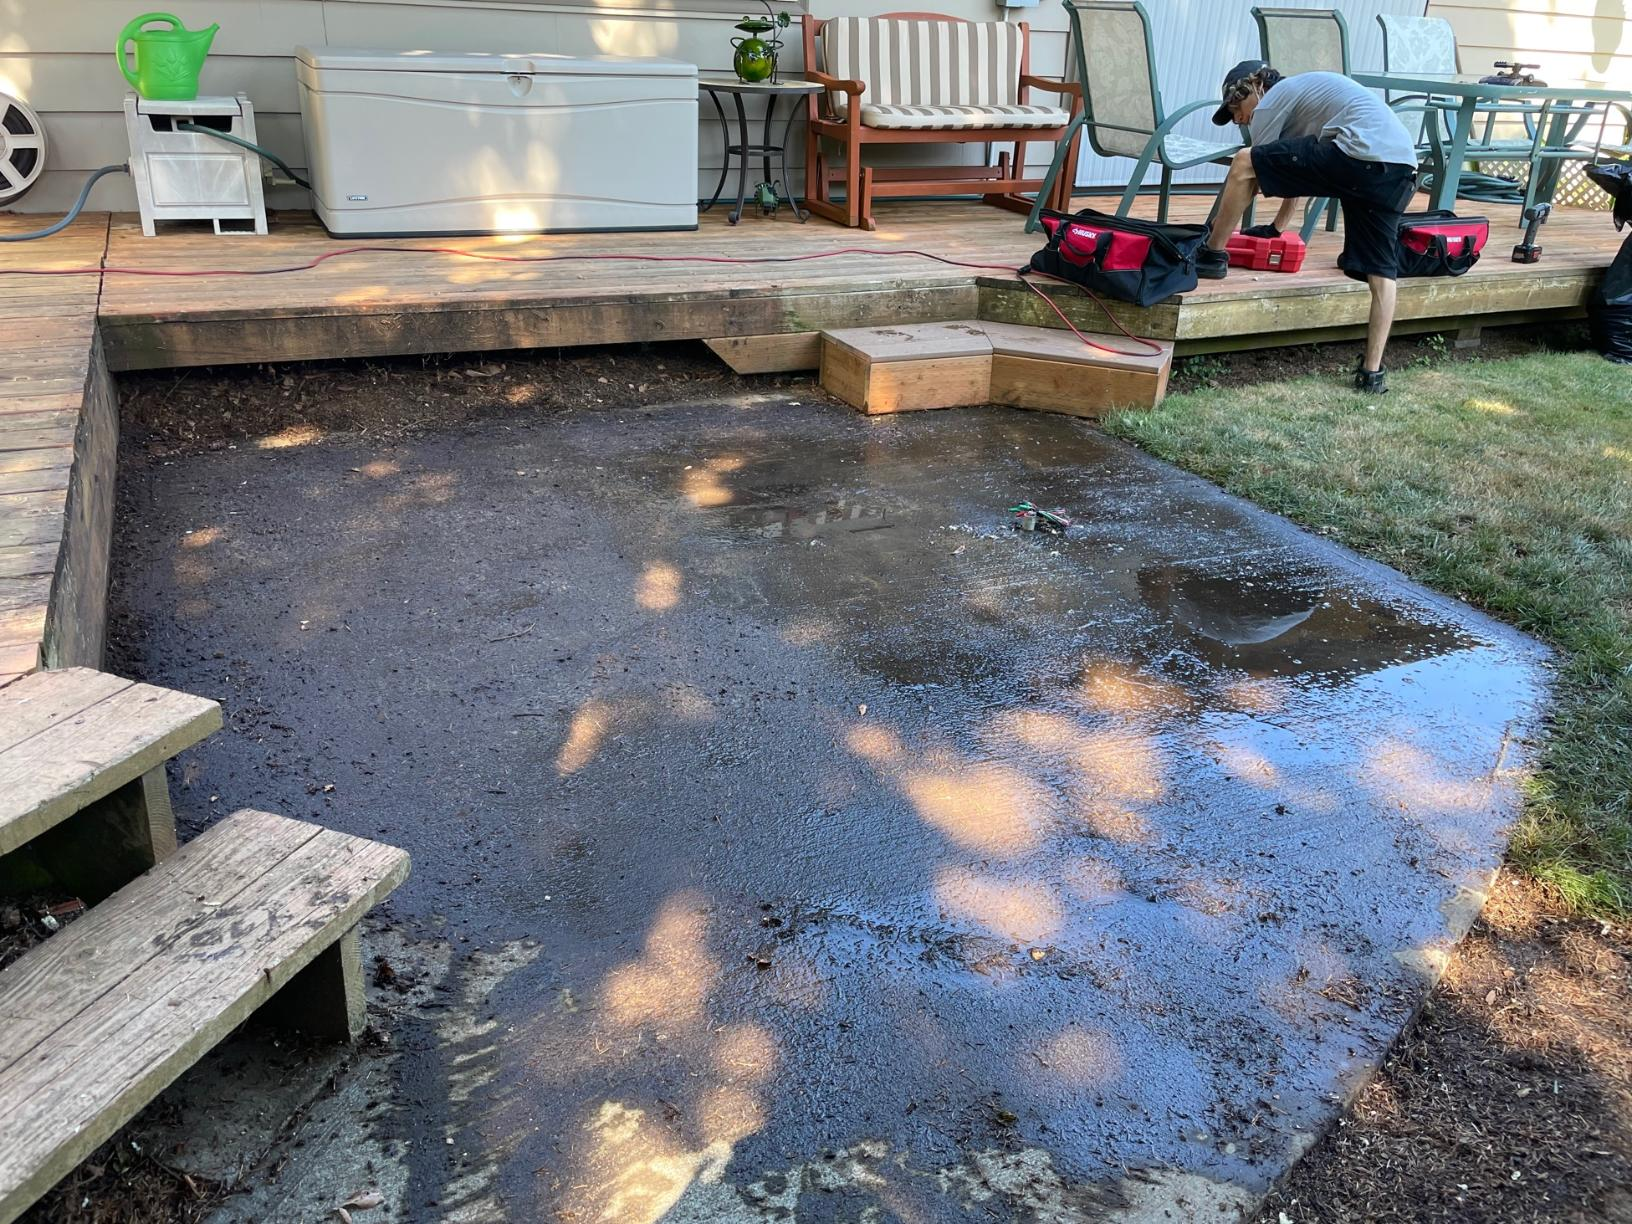 Portland Or - Hot Tub Removal - After Photo